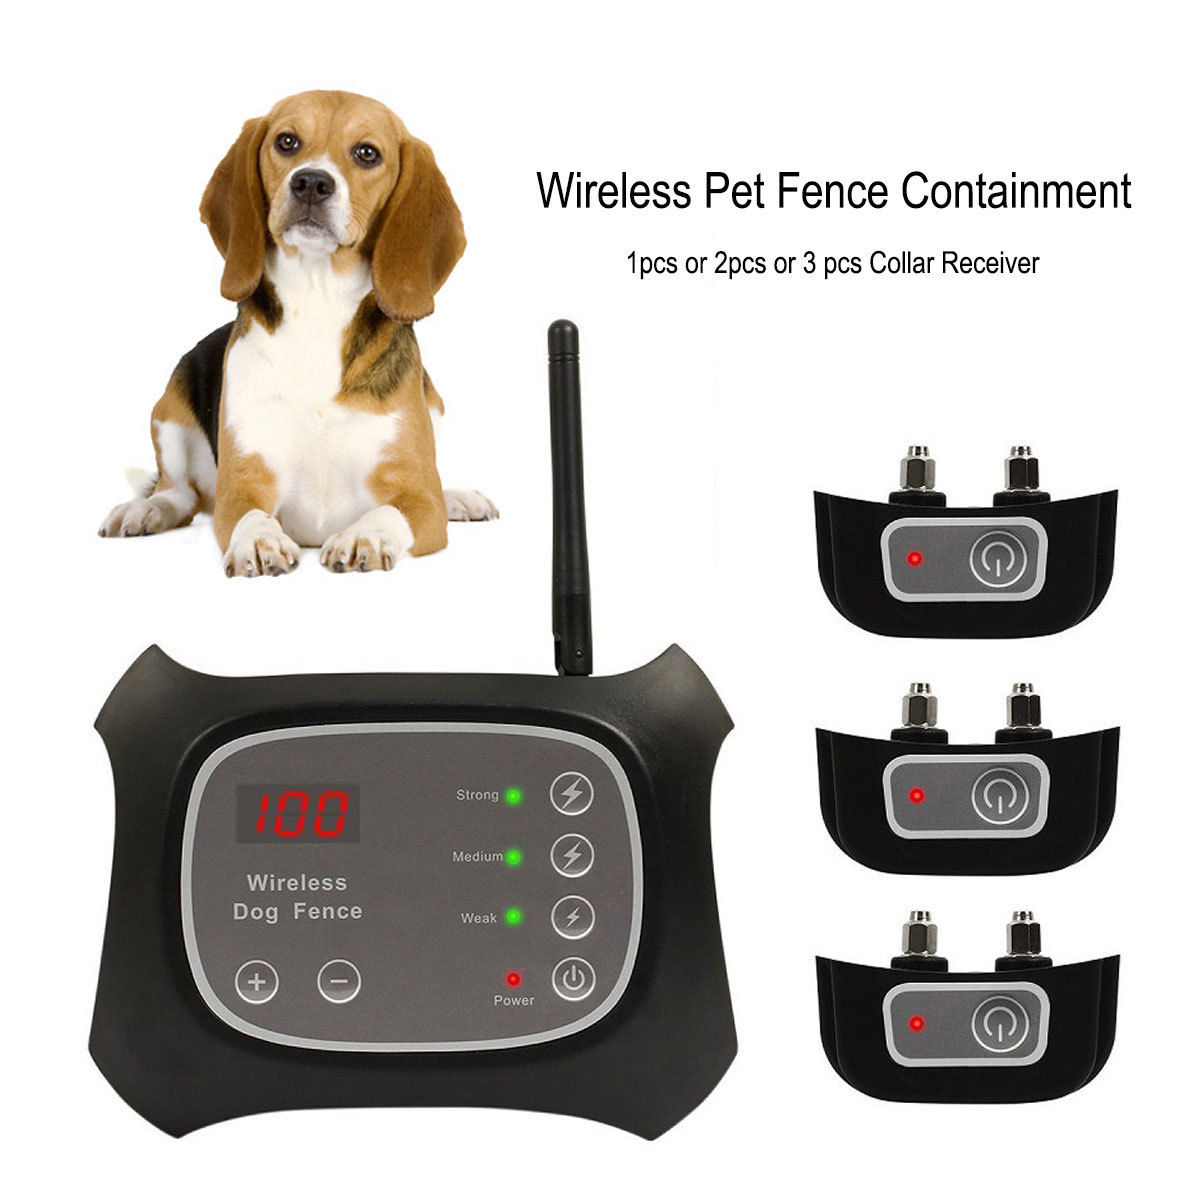 wireless dog fence pet containment system waterproof 123 dogs ky